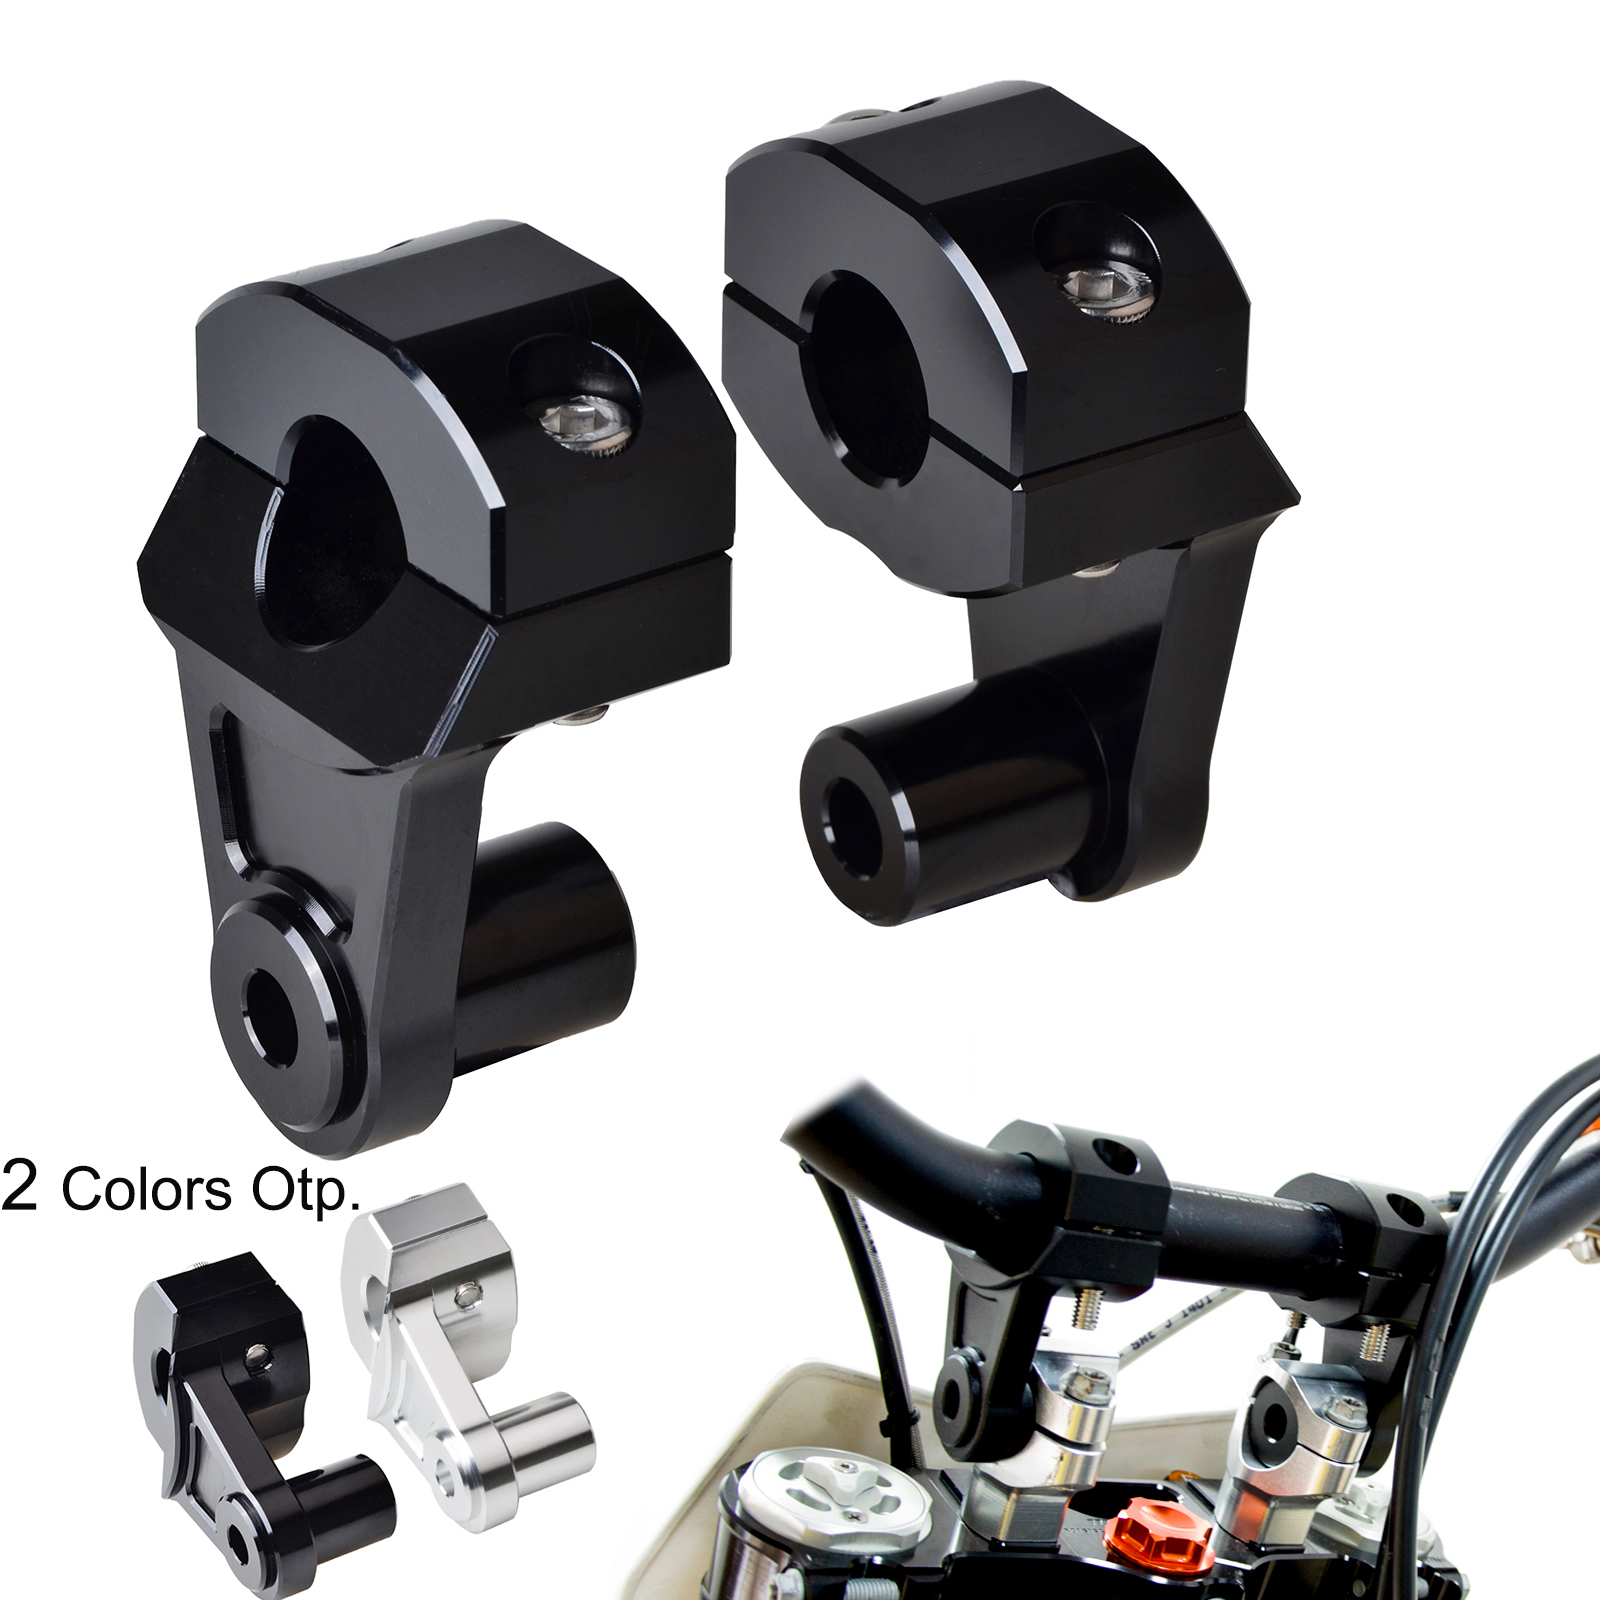 22mm Handlebar Riser Clamp Mount For Suzuki DL 650 1000 V Strom SV DRZ 400S/E DR 200SE 650SE GSF 600 1200 1250 GSR GSX 750 1400 motorcycle clutch wire adjustment cable cnc aluminum m8 m10 for suzuki gsr 600 750 sv 650 1000 sv1000 dl650 v strom 650 1000